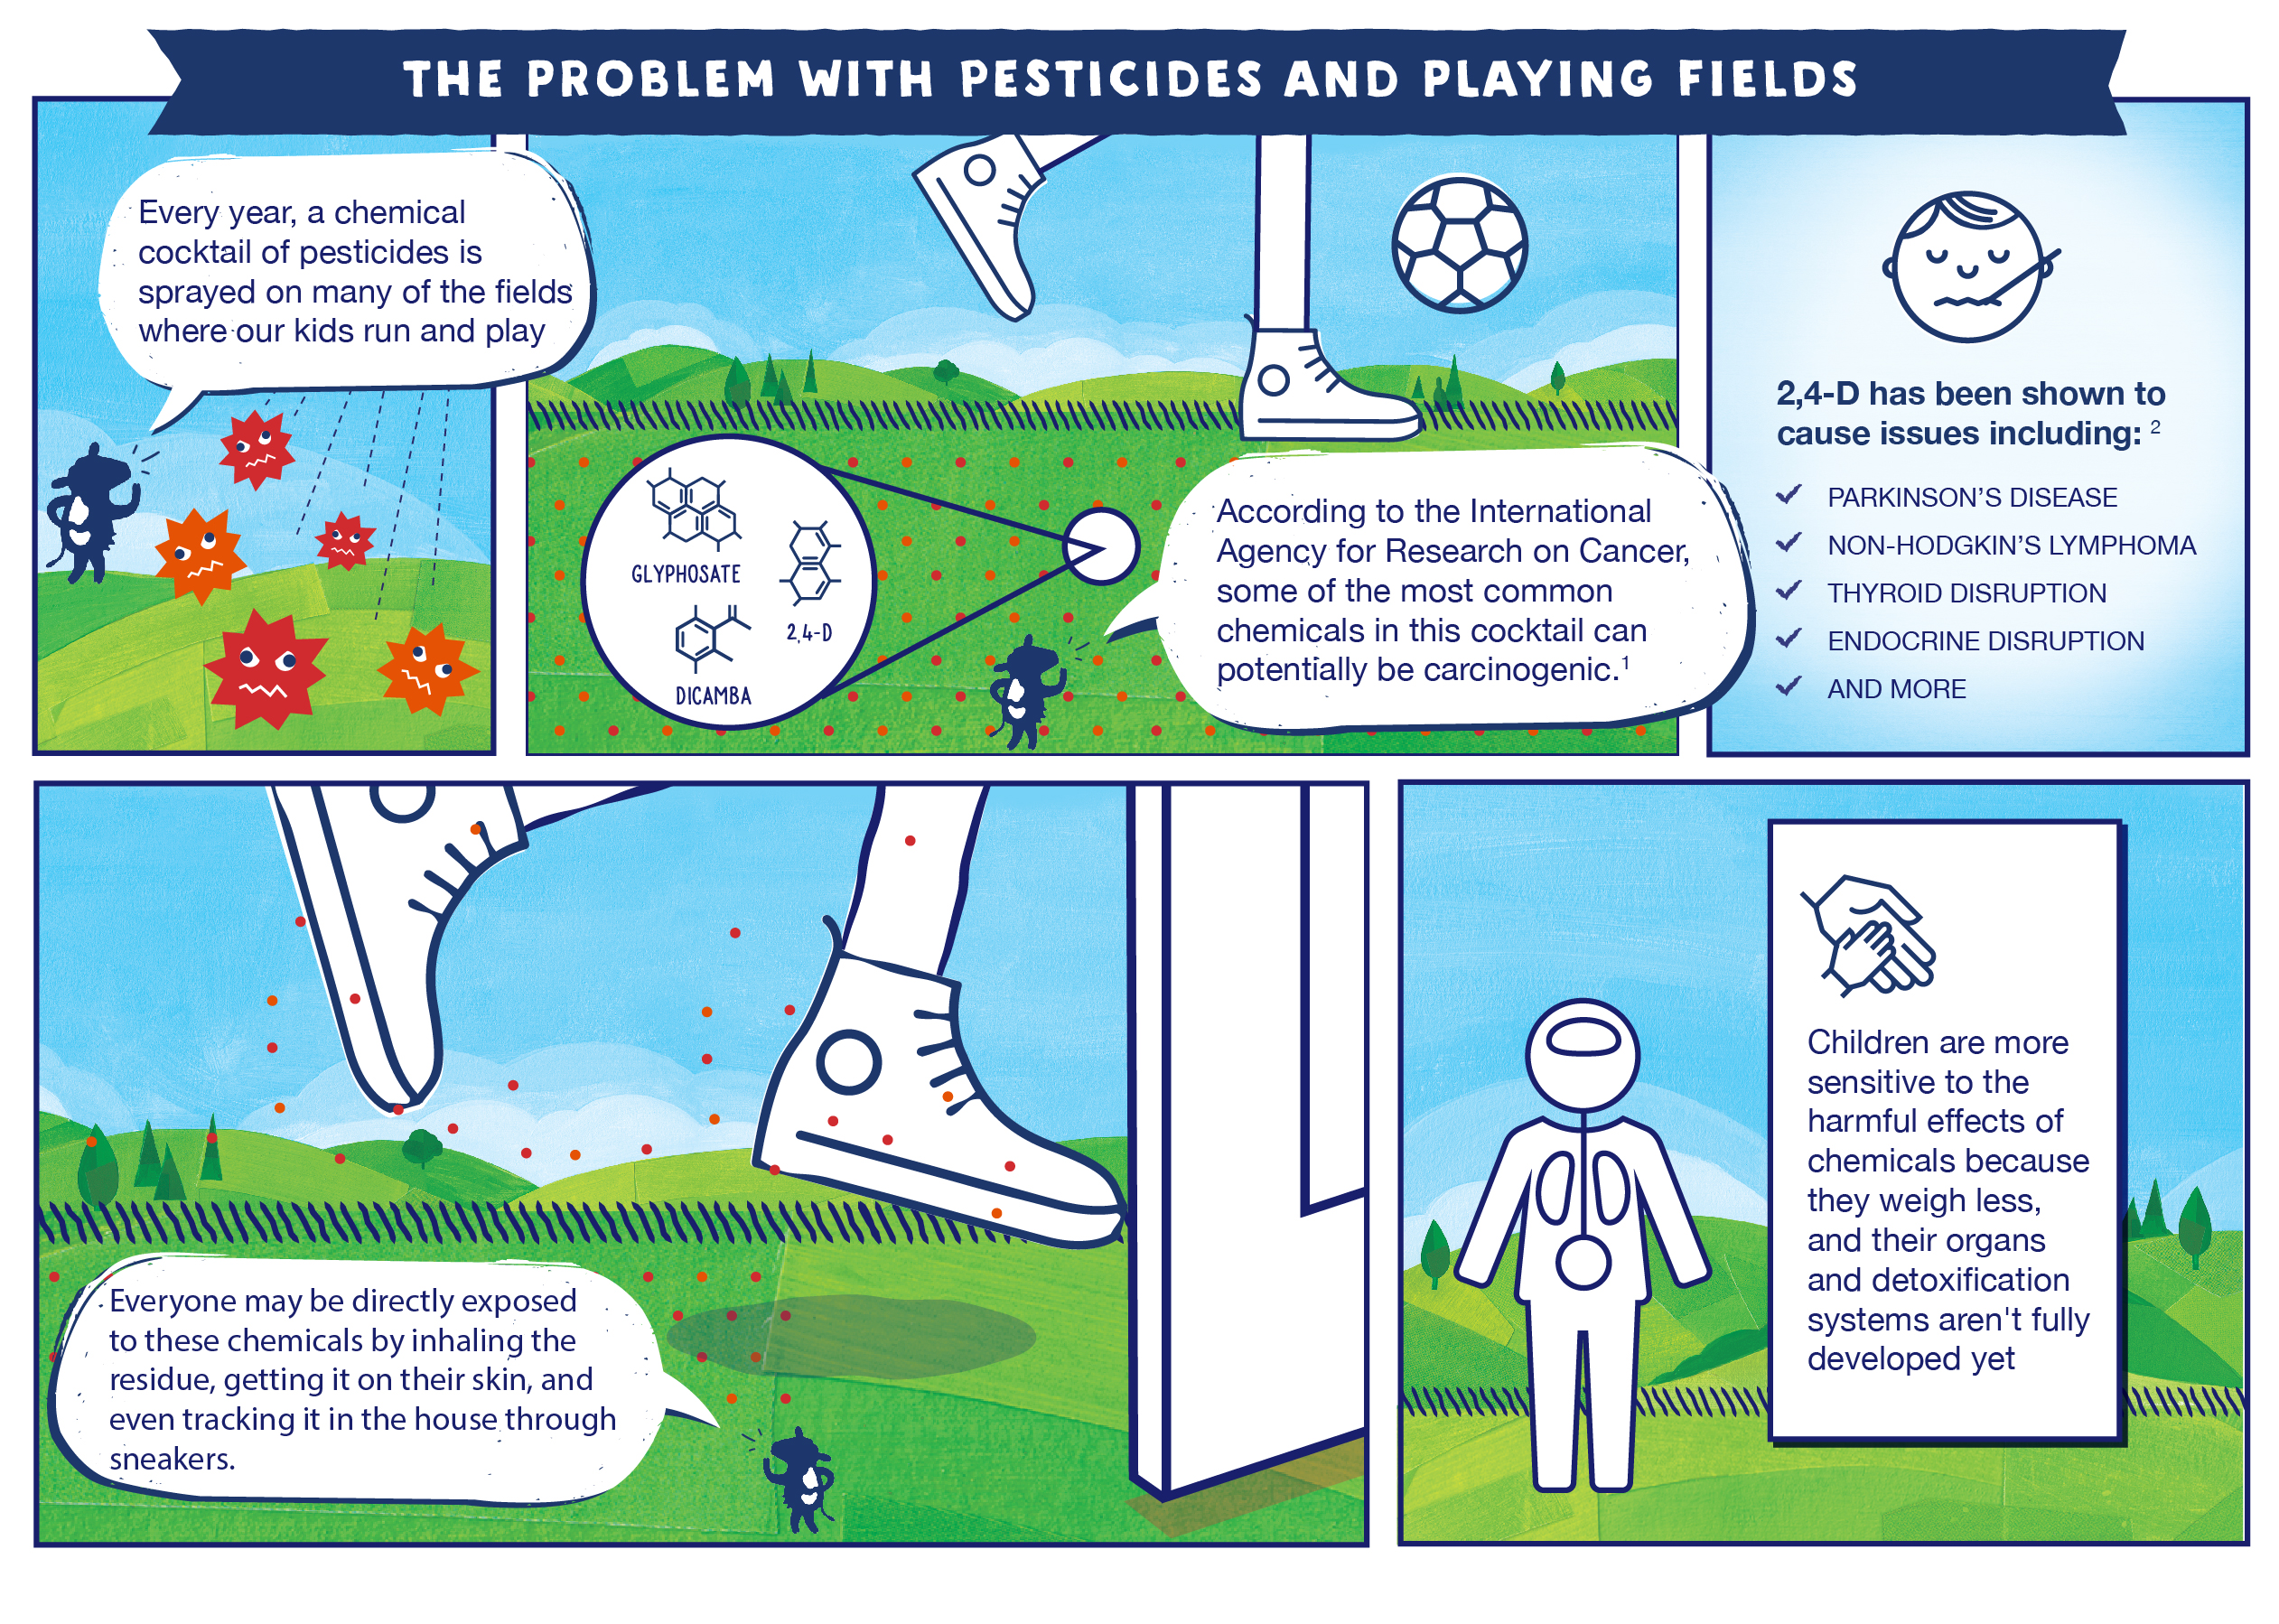 https://www.stonyfield.com:443/wp-content/uploads/2018/04/Stonylook_ProblemWithPesticides_41618-01.jpg